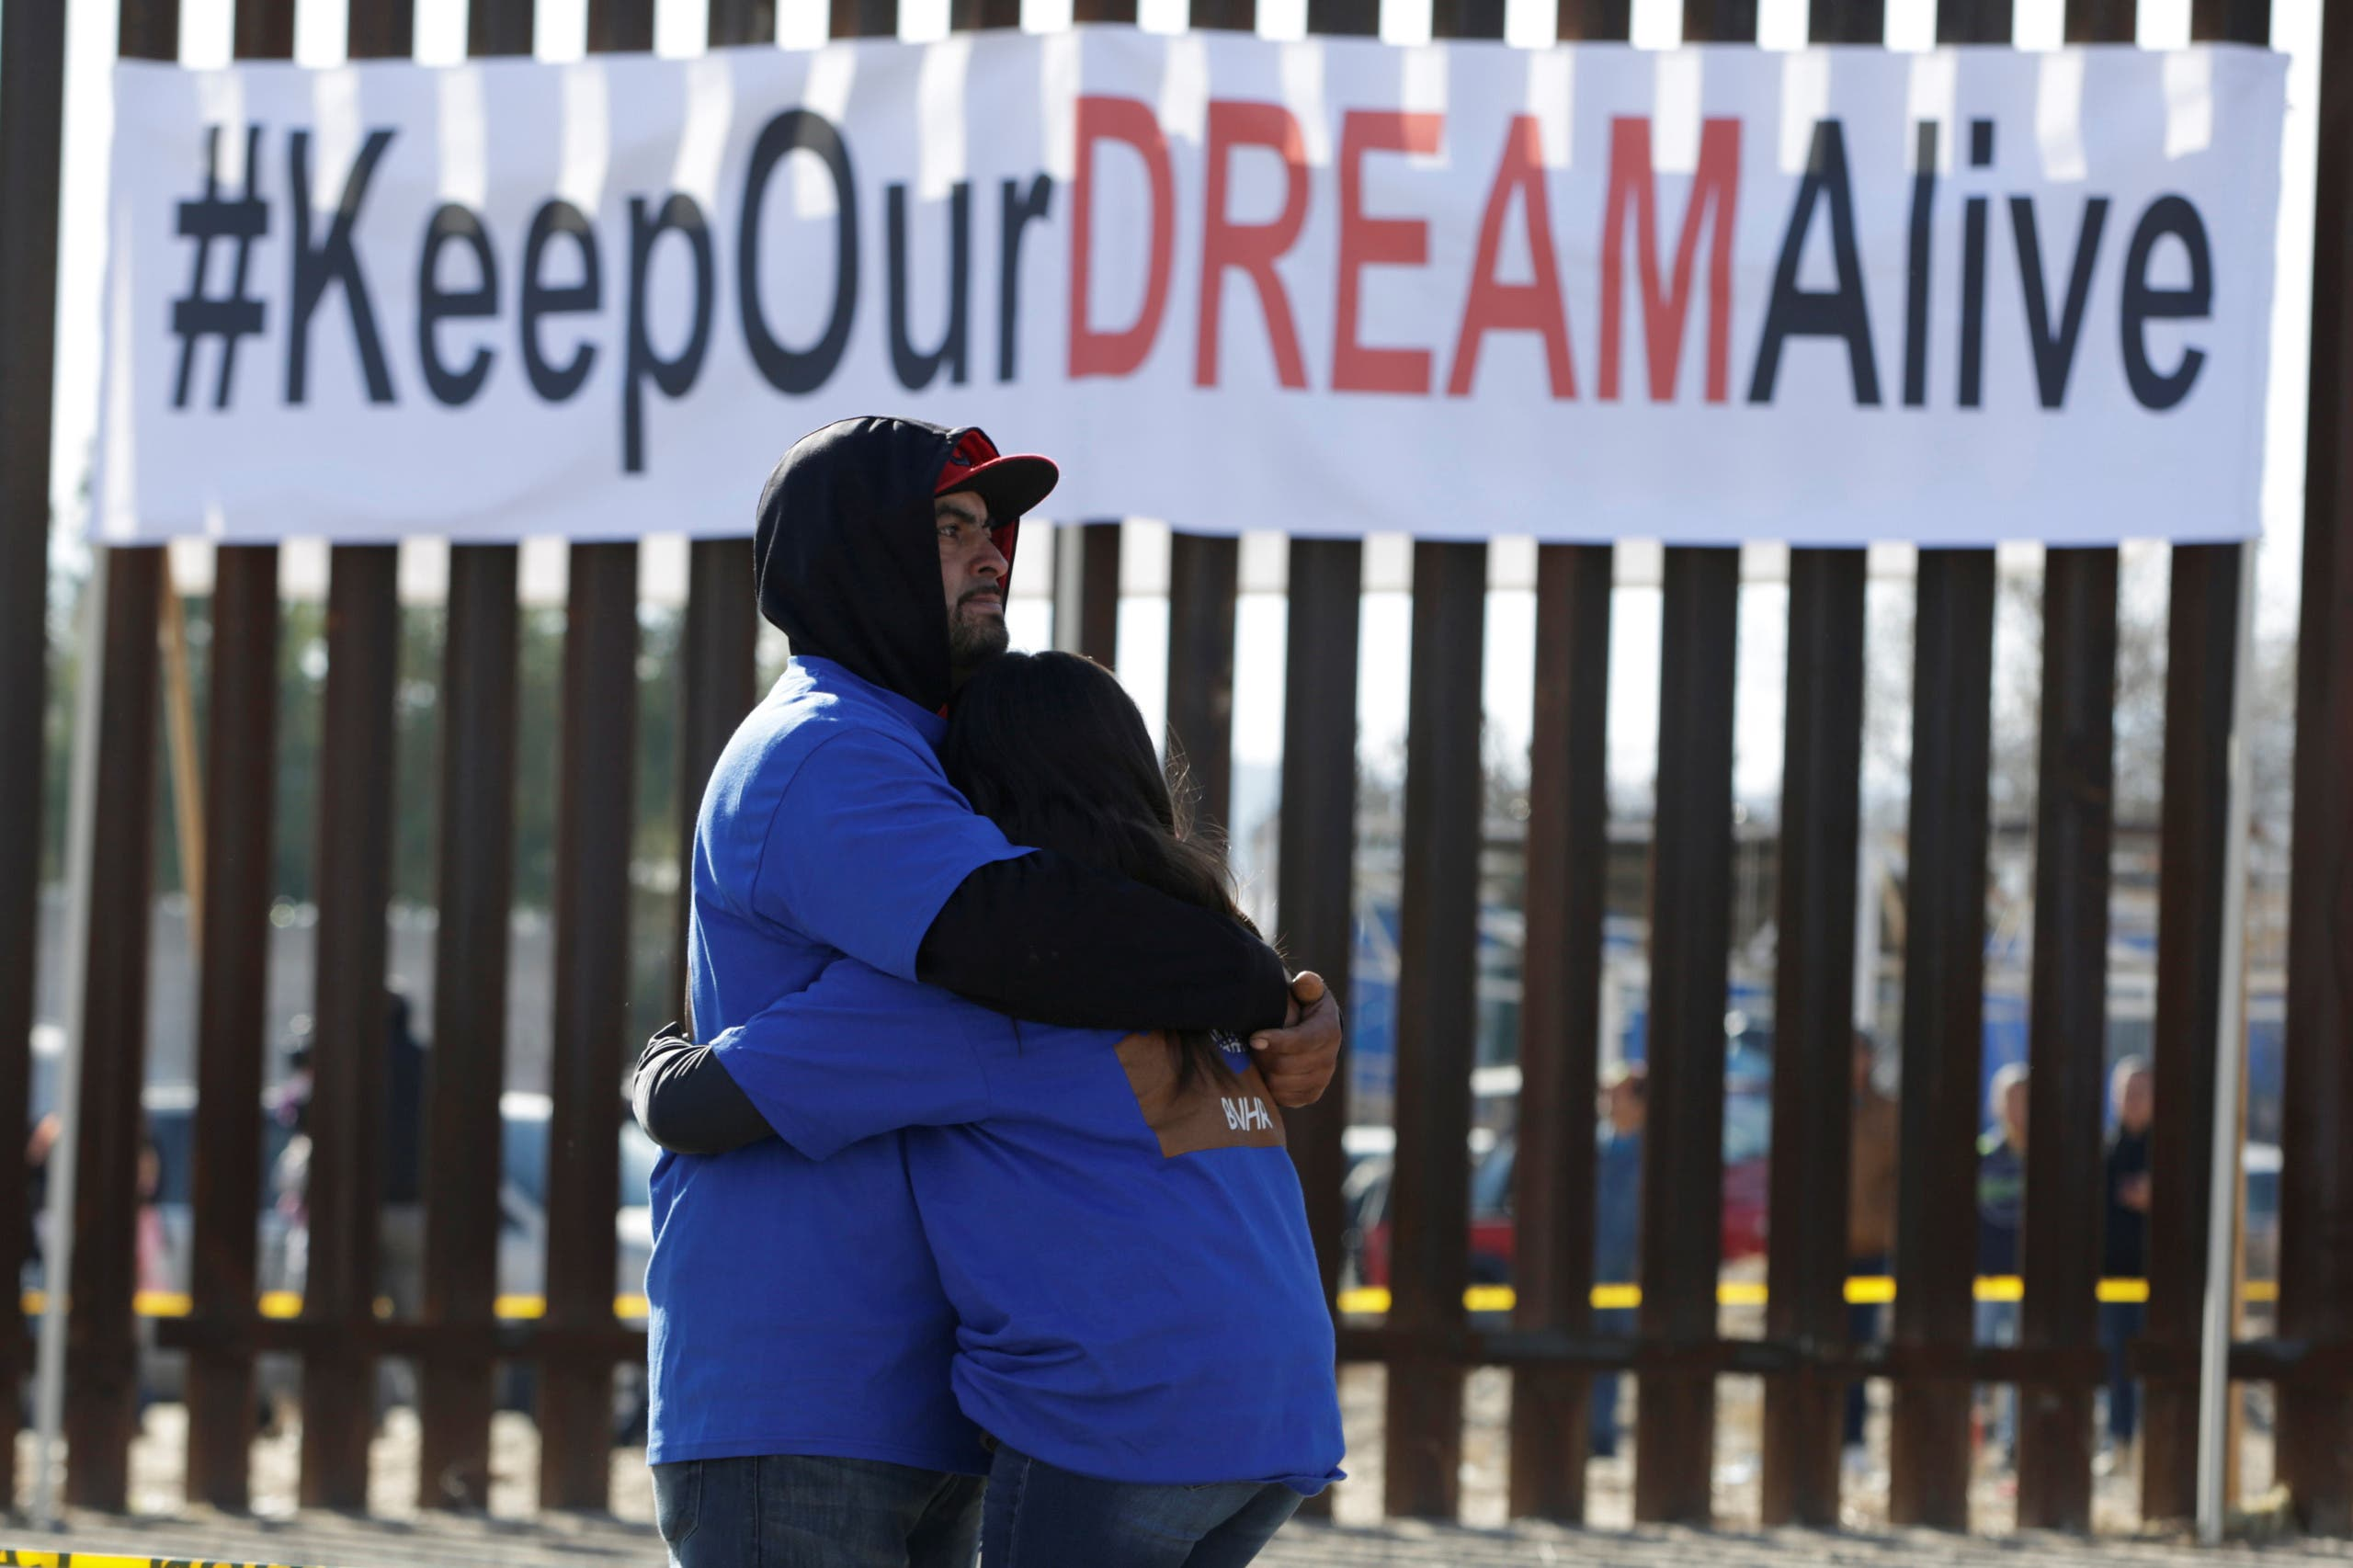 'Dreamers' hug as they meet with relatives during the 'Keep Our Dream Alive' binational meeting at a new section of the border wall on the U.S.-Mexico border in Sunland Park, U.S., opposite the Mexican city of Ciudad Juarez, Mexico, December 10, 2017. (Reuters)